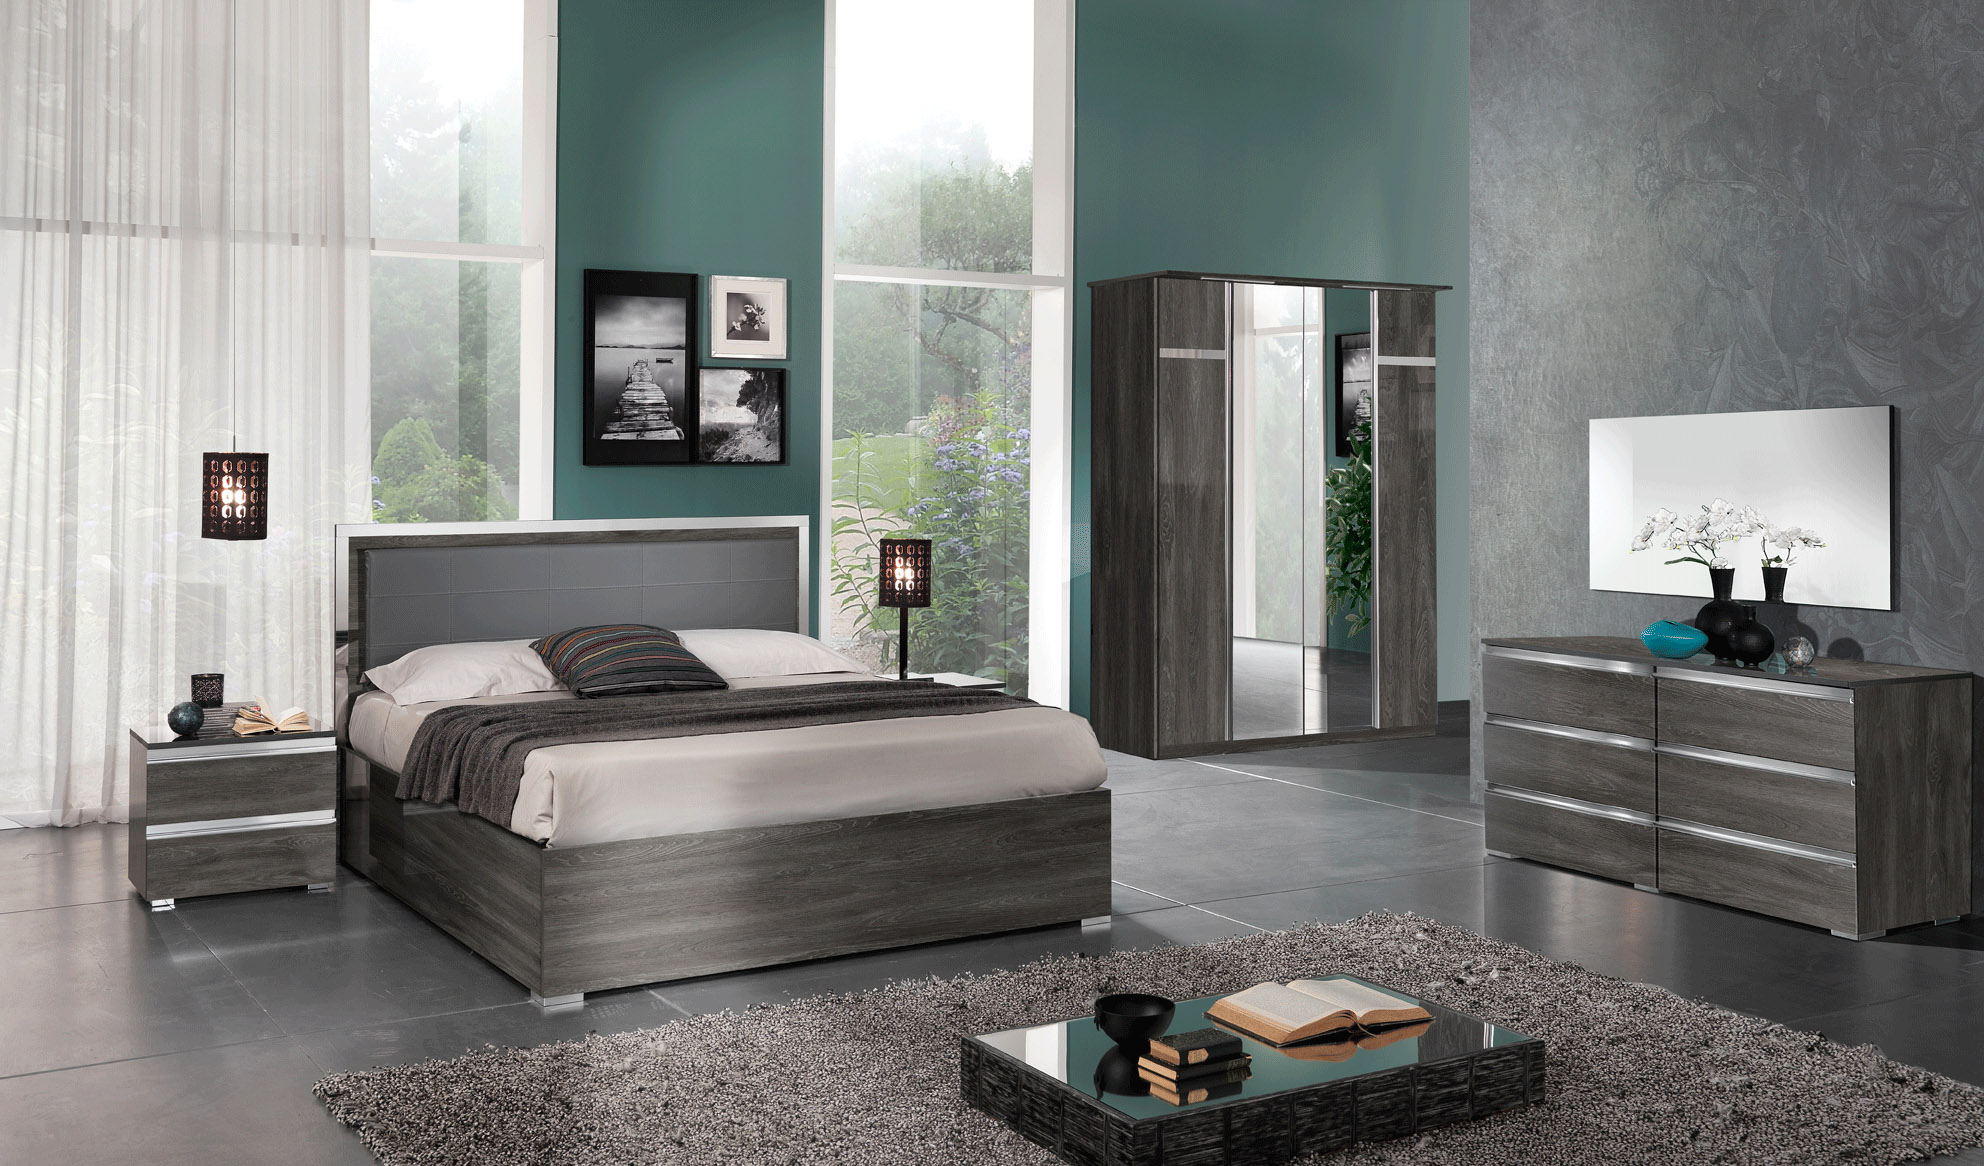 made in italy leather contemporary platform bedroom sets 12560 | italian bed furnishing grey master bedroom suite dreser oxford